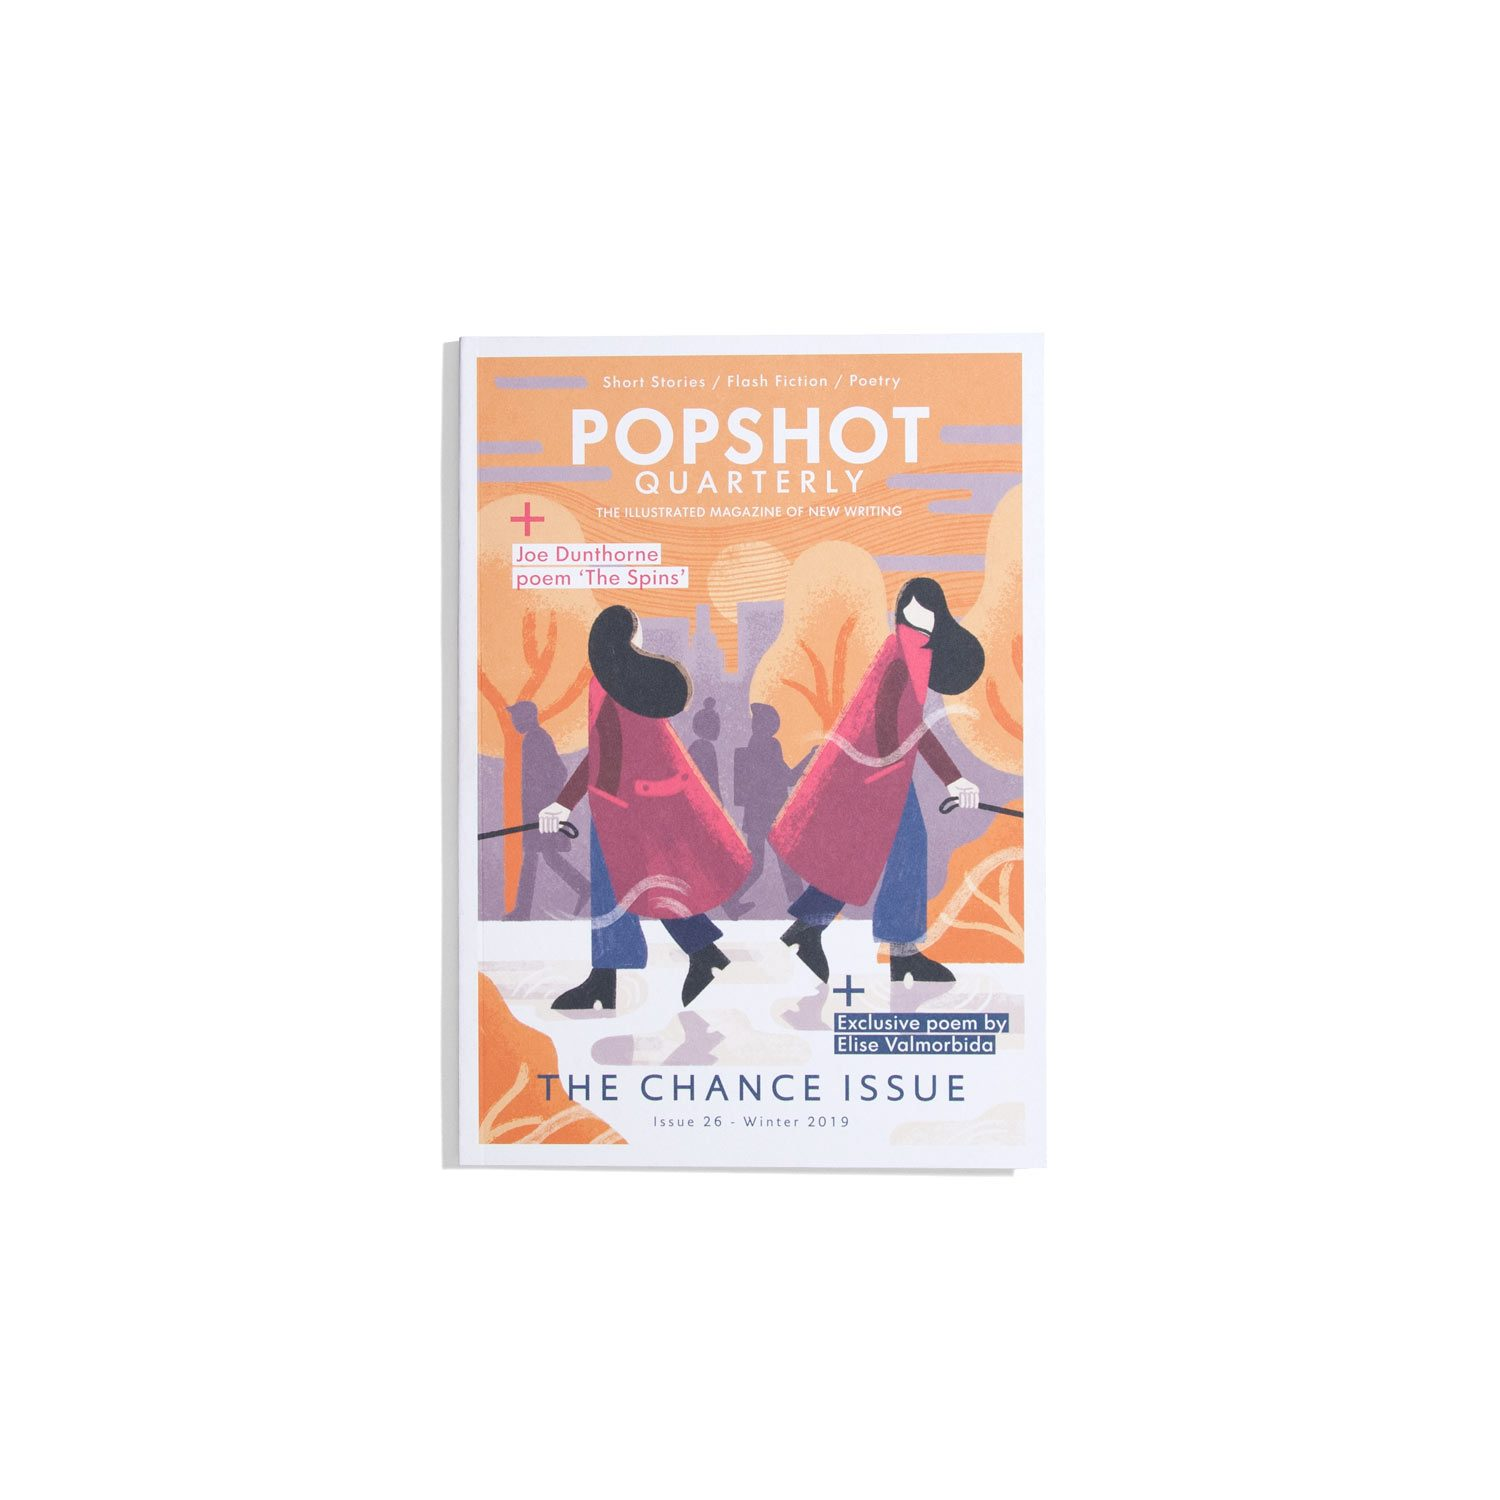 Popshot #26 Winter 2019